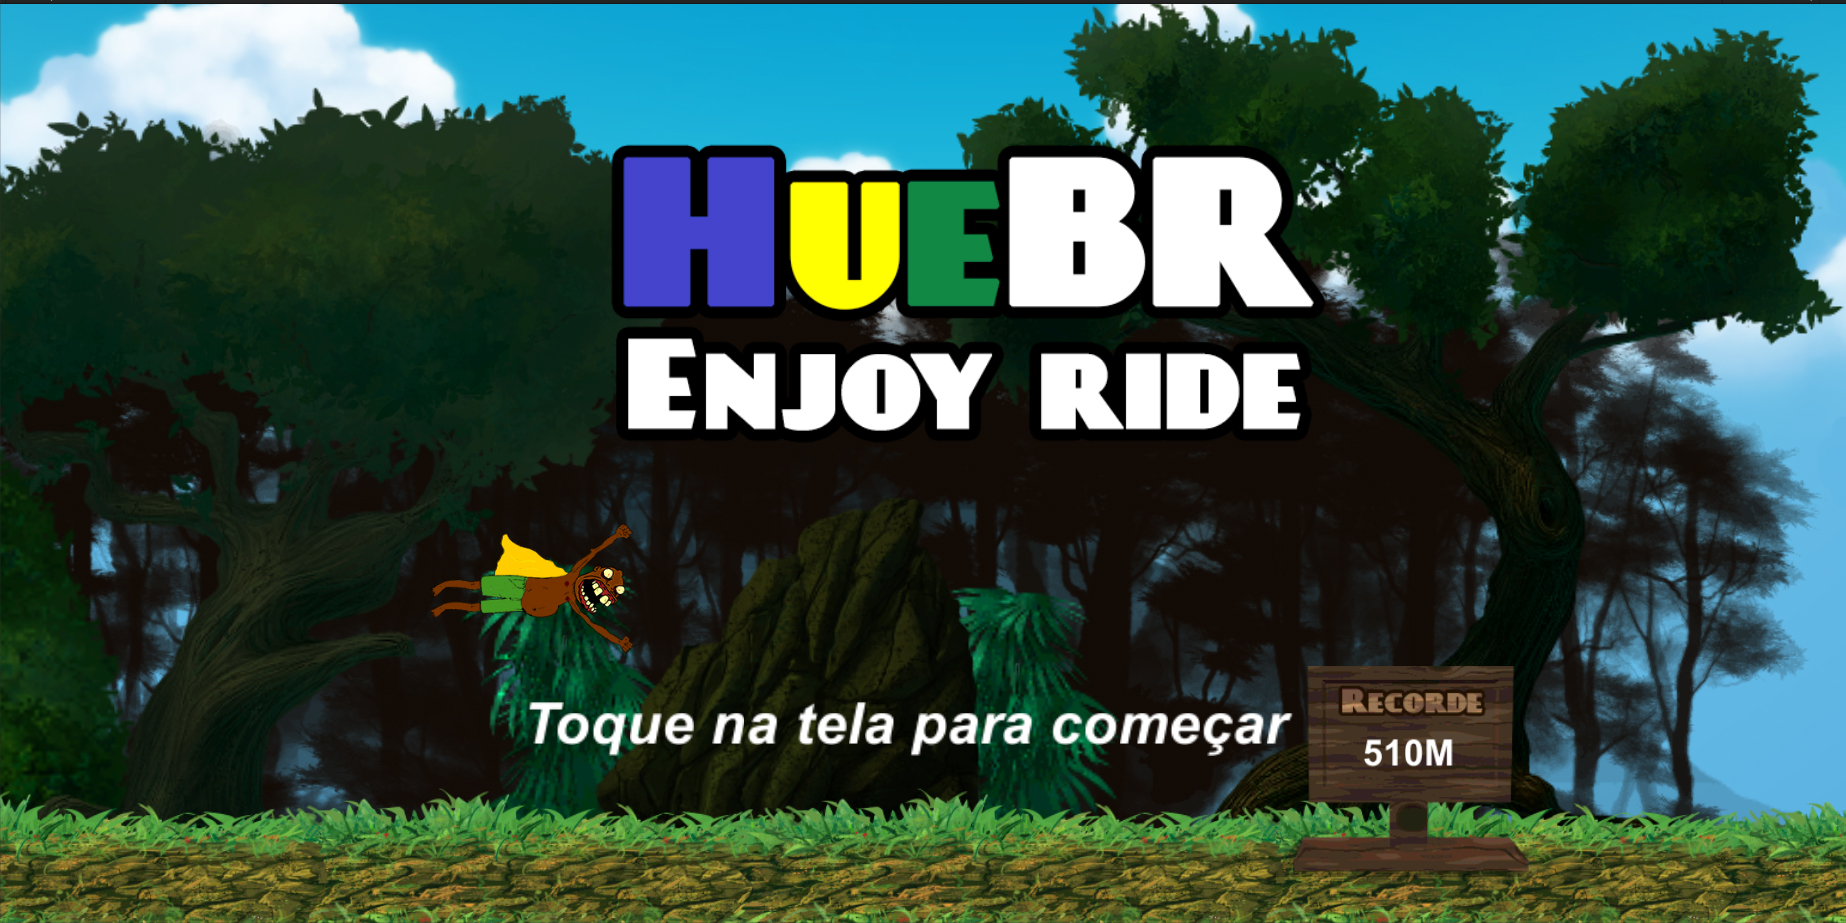 Hue BR Enjoy Ride